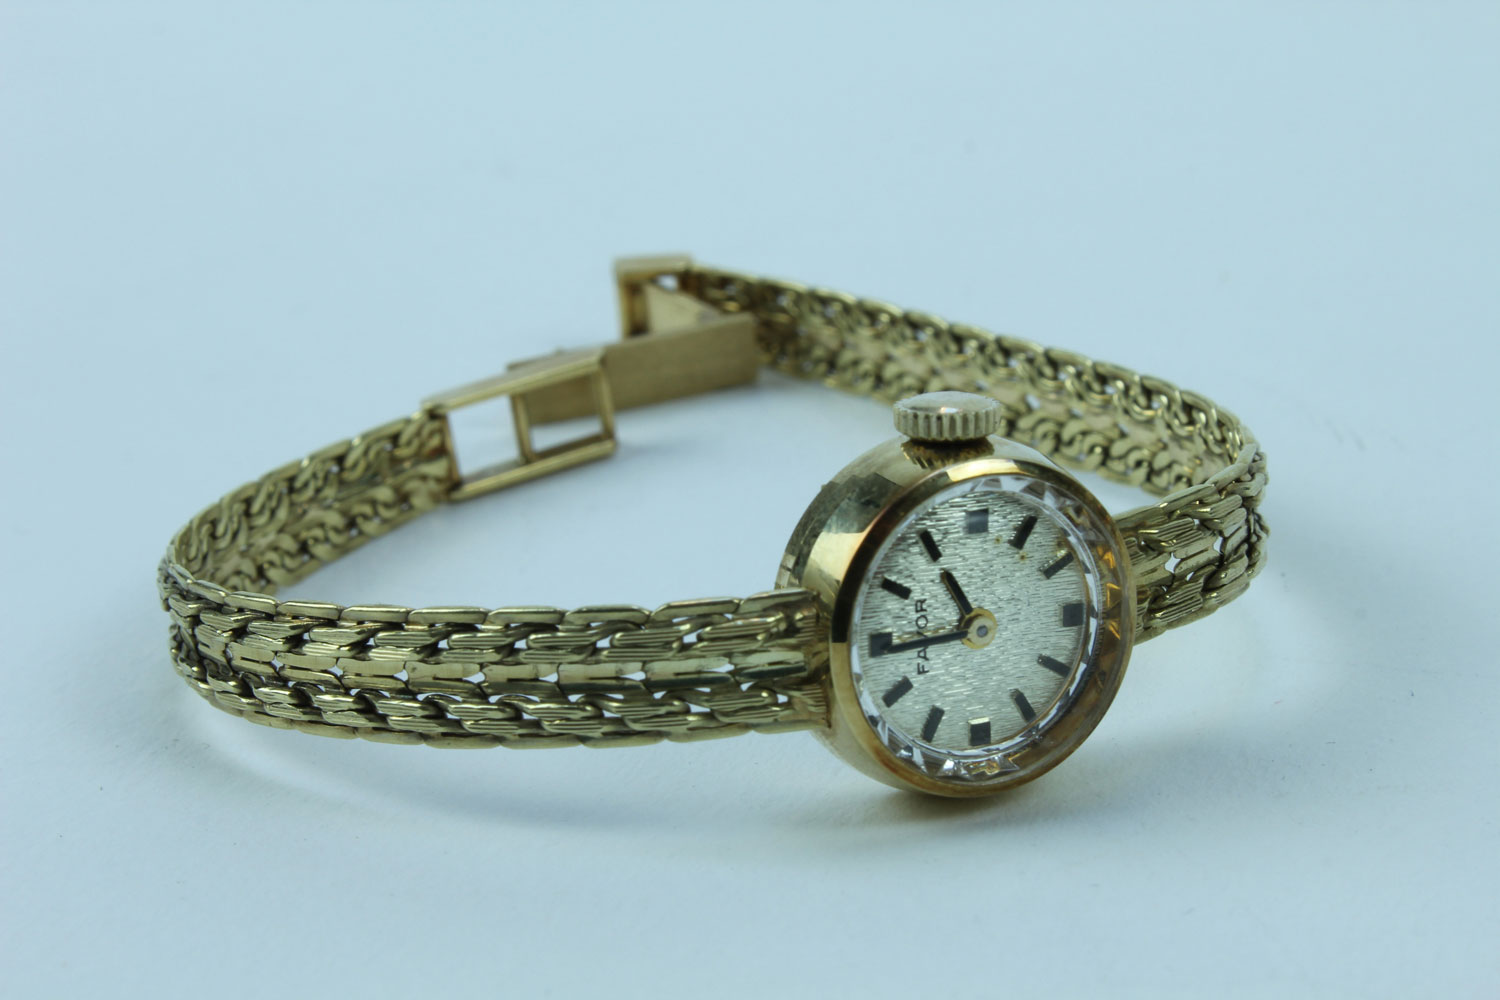 FAVOR LADYWATCH GOLD 585 HANDWINDING EXCLUSIVE VINTAGE UNUSED